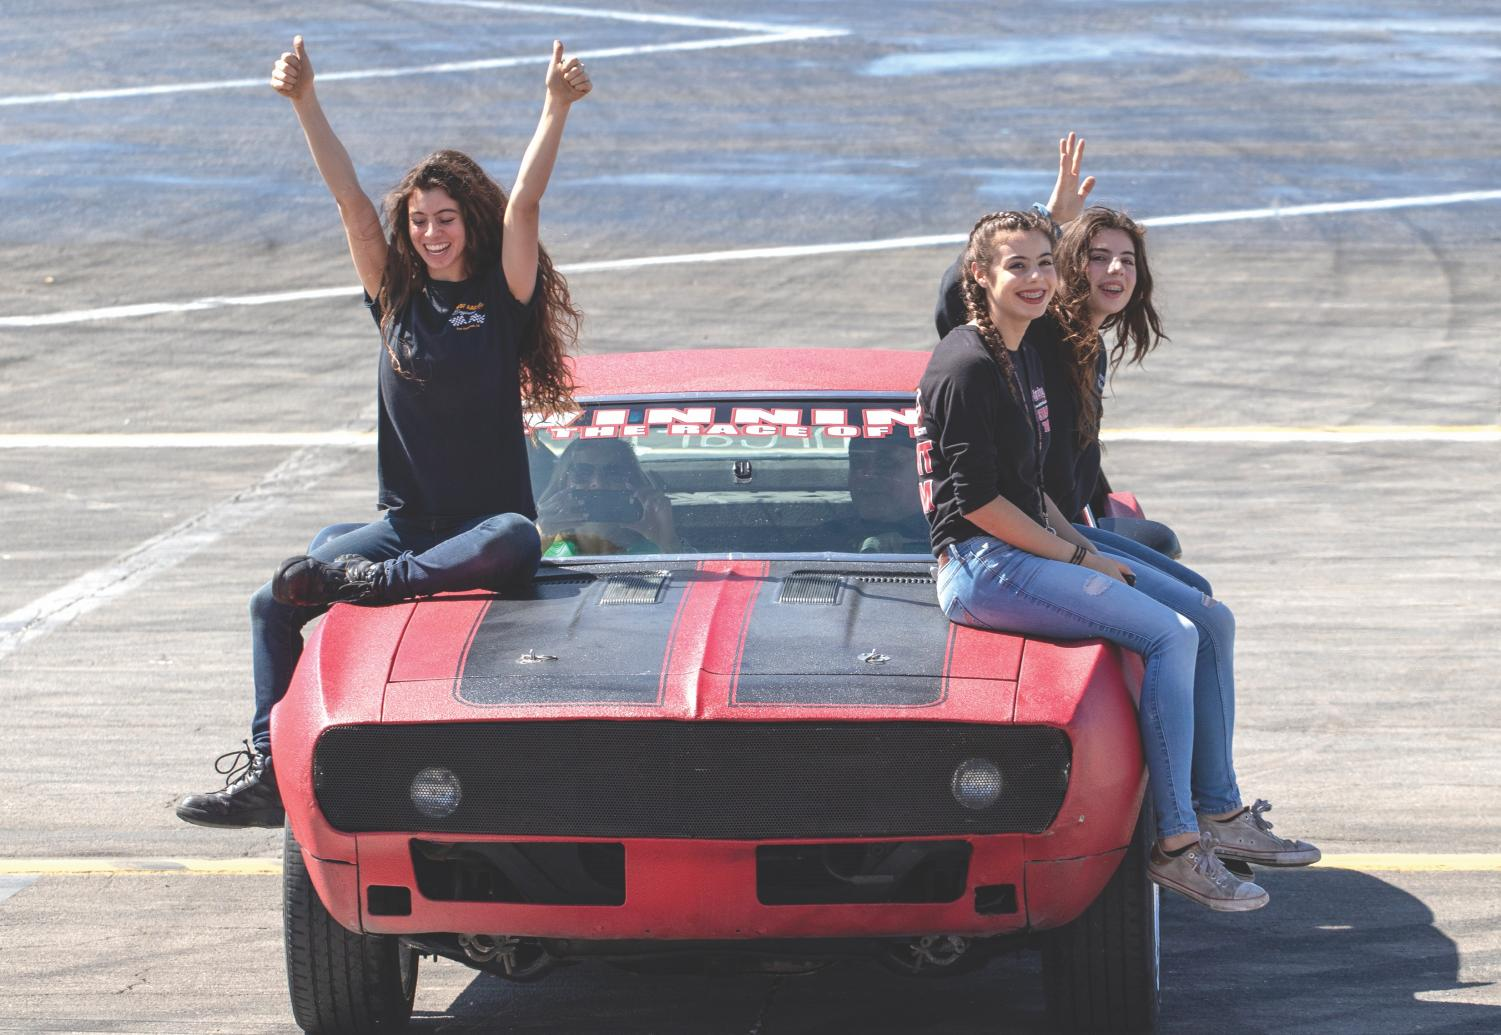 Stunt driver Sammy Maloof and his daughters perform in his 1967 Z28 Camero for students at Racing Against Bullying in Irwindale Speedway.